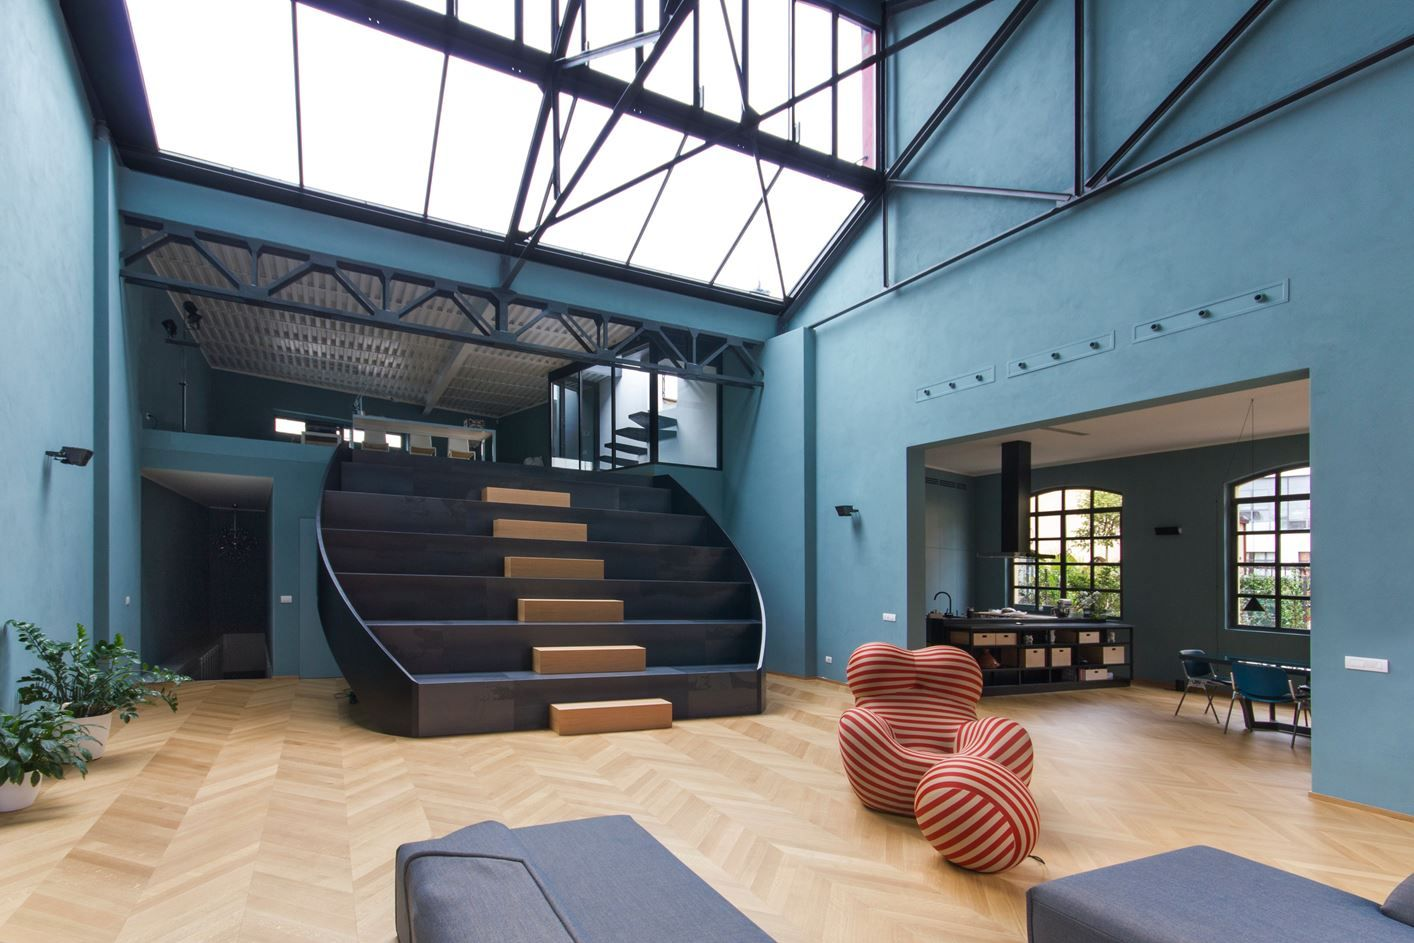 LOFT M.S S.C - Picture gallery | Residential | Pinterest